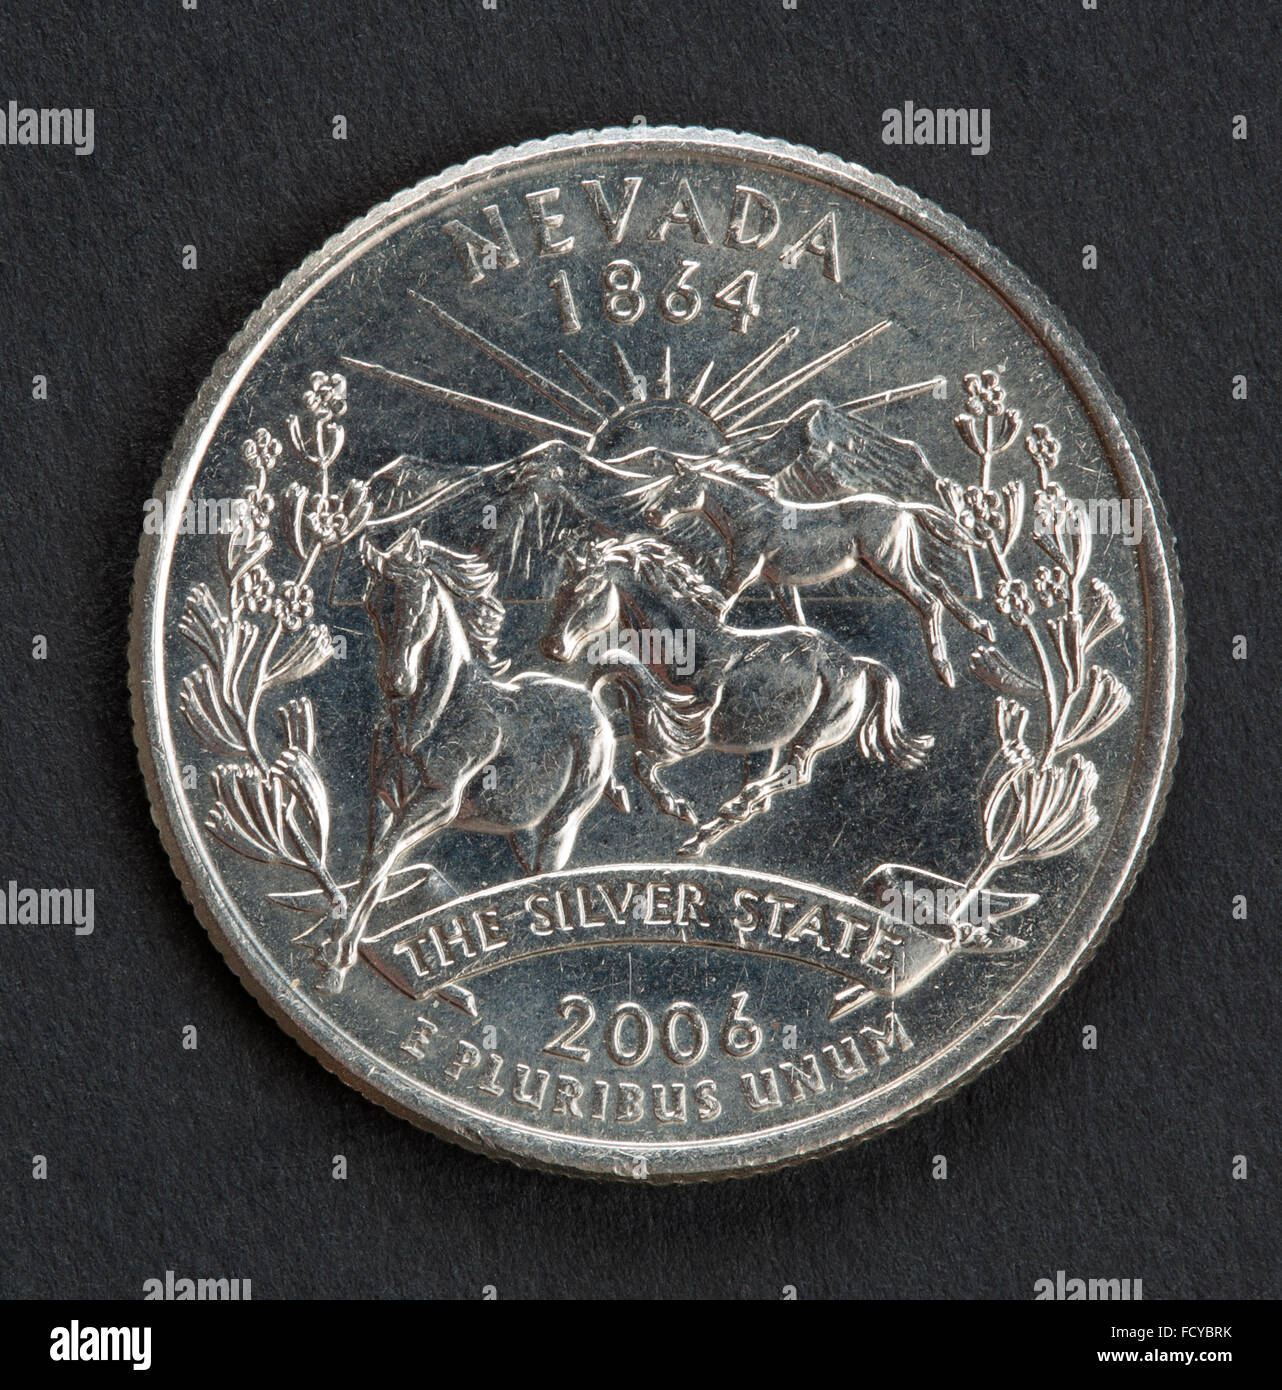 Nevada silver state quarter dollar coin - Stock Image